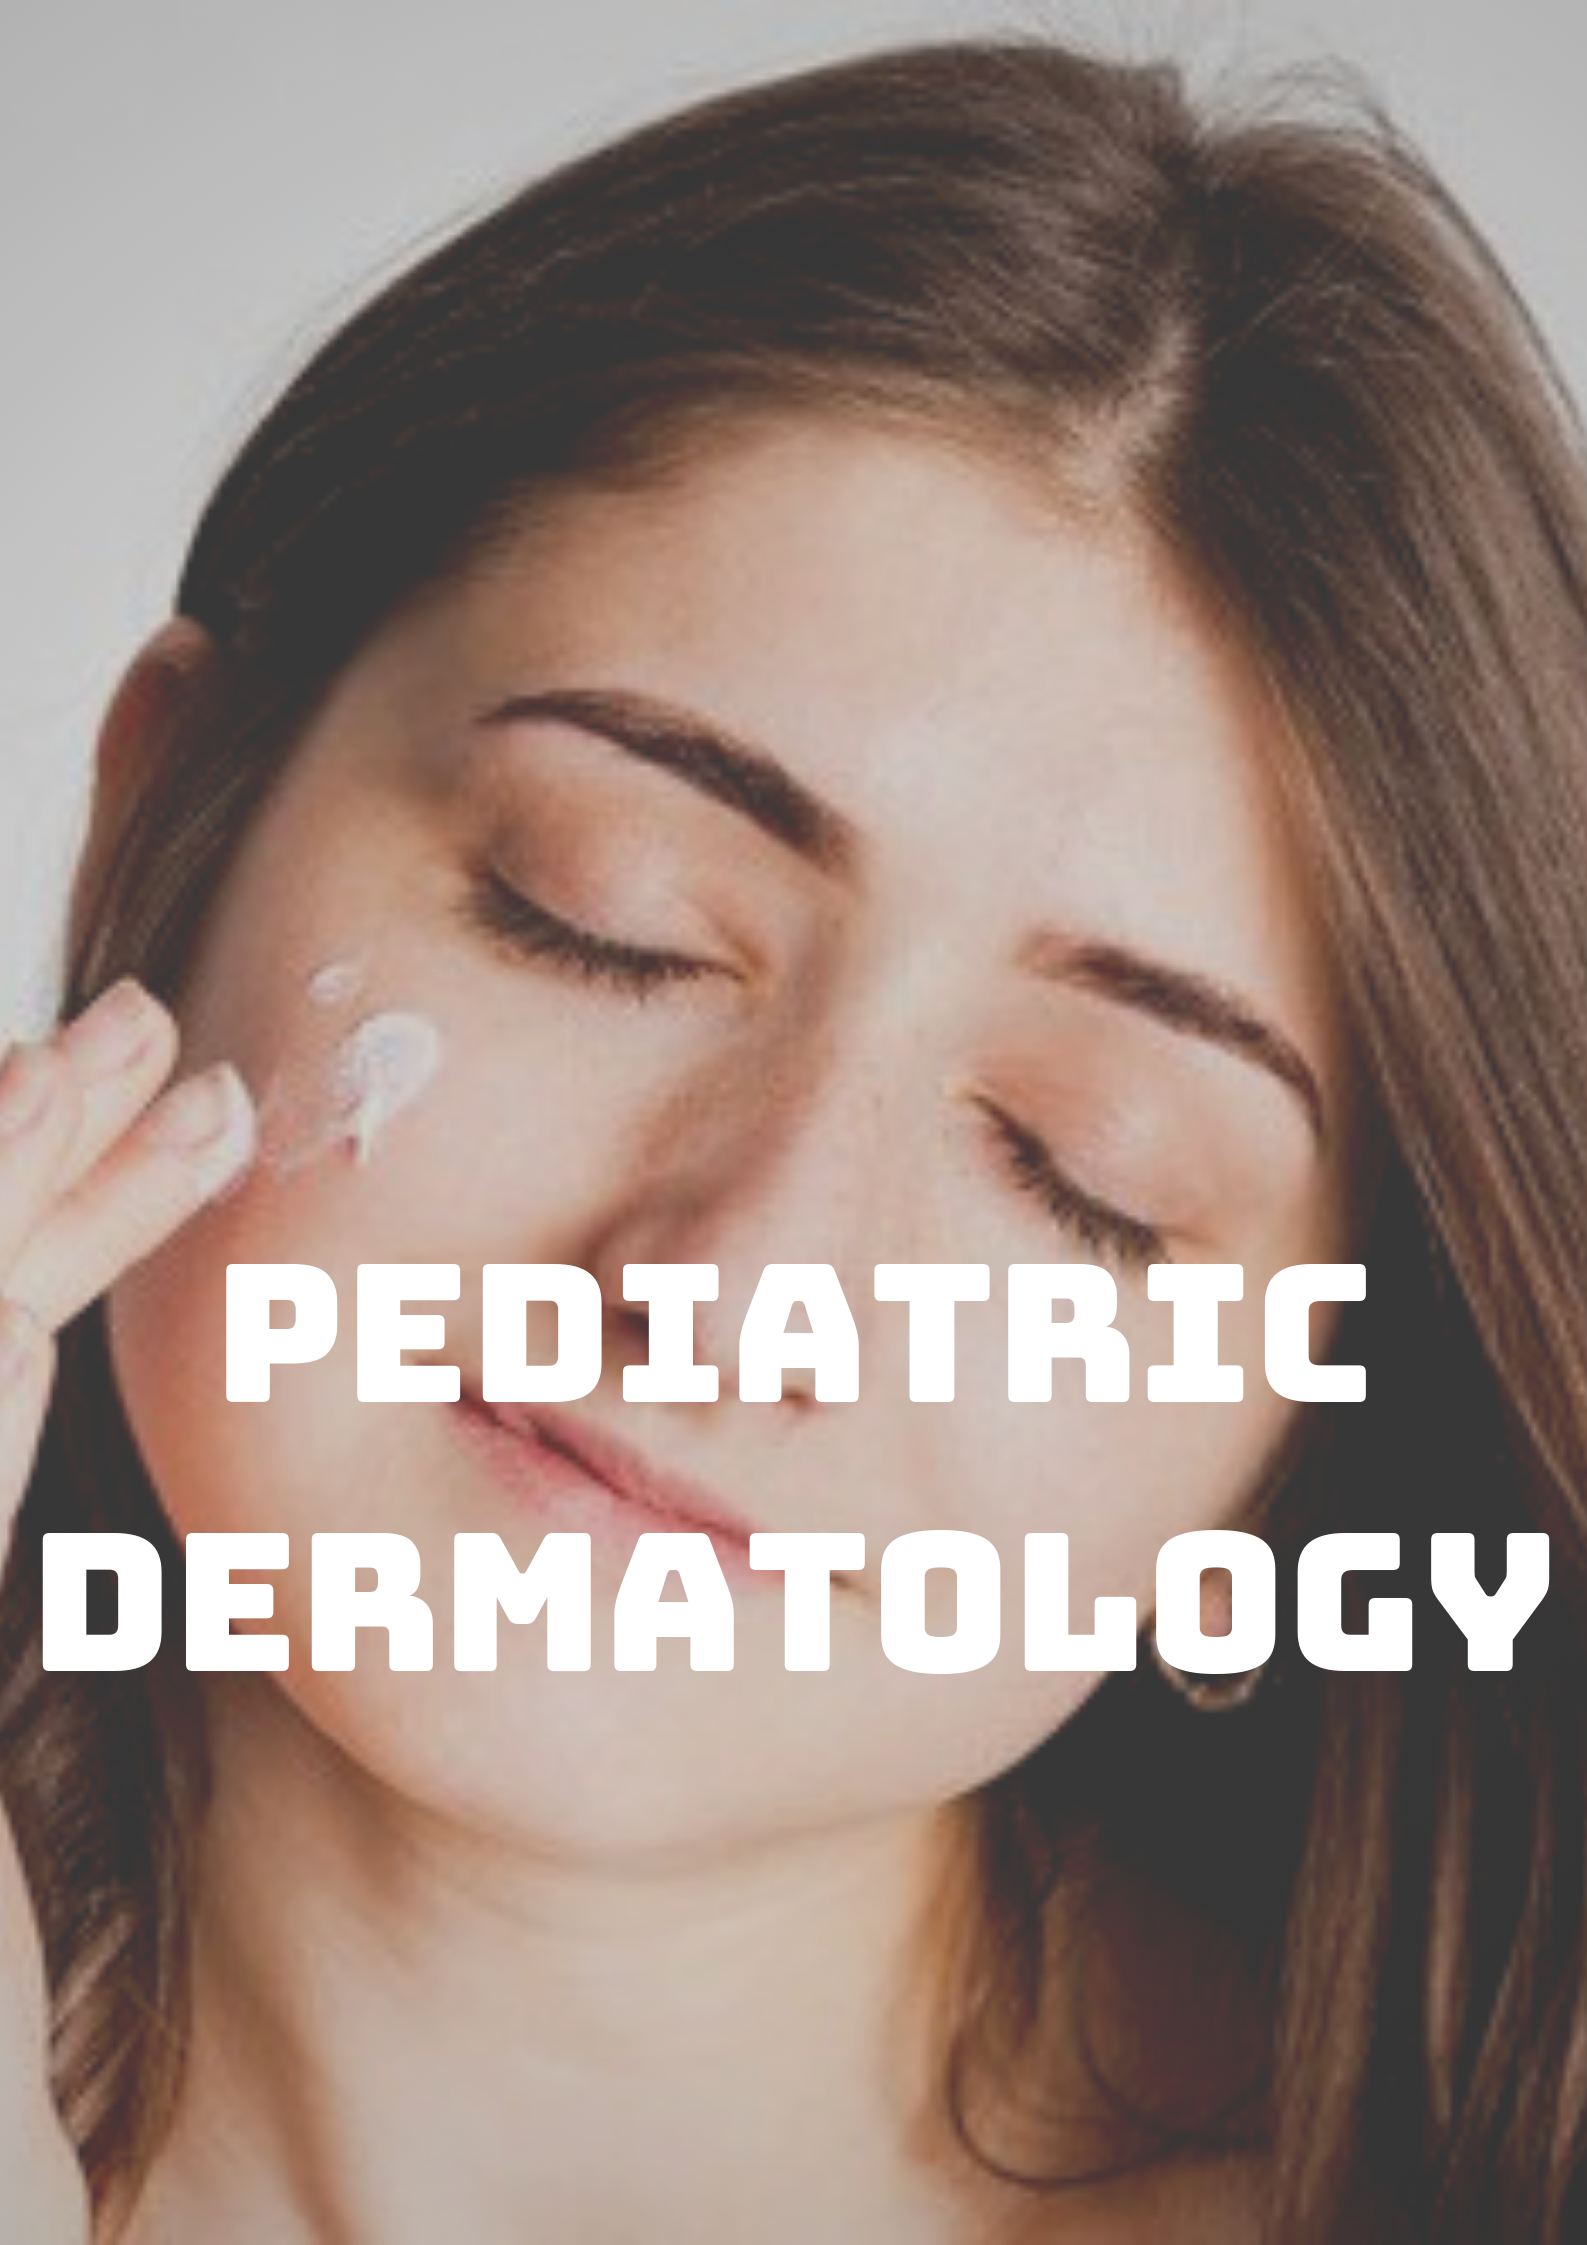 Pediatric Dermatology Photo